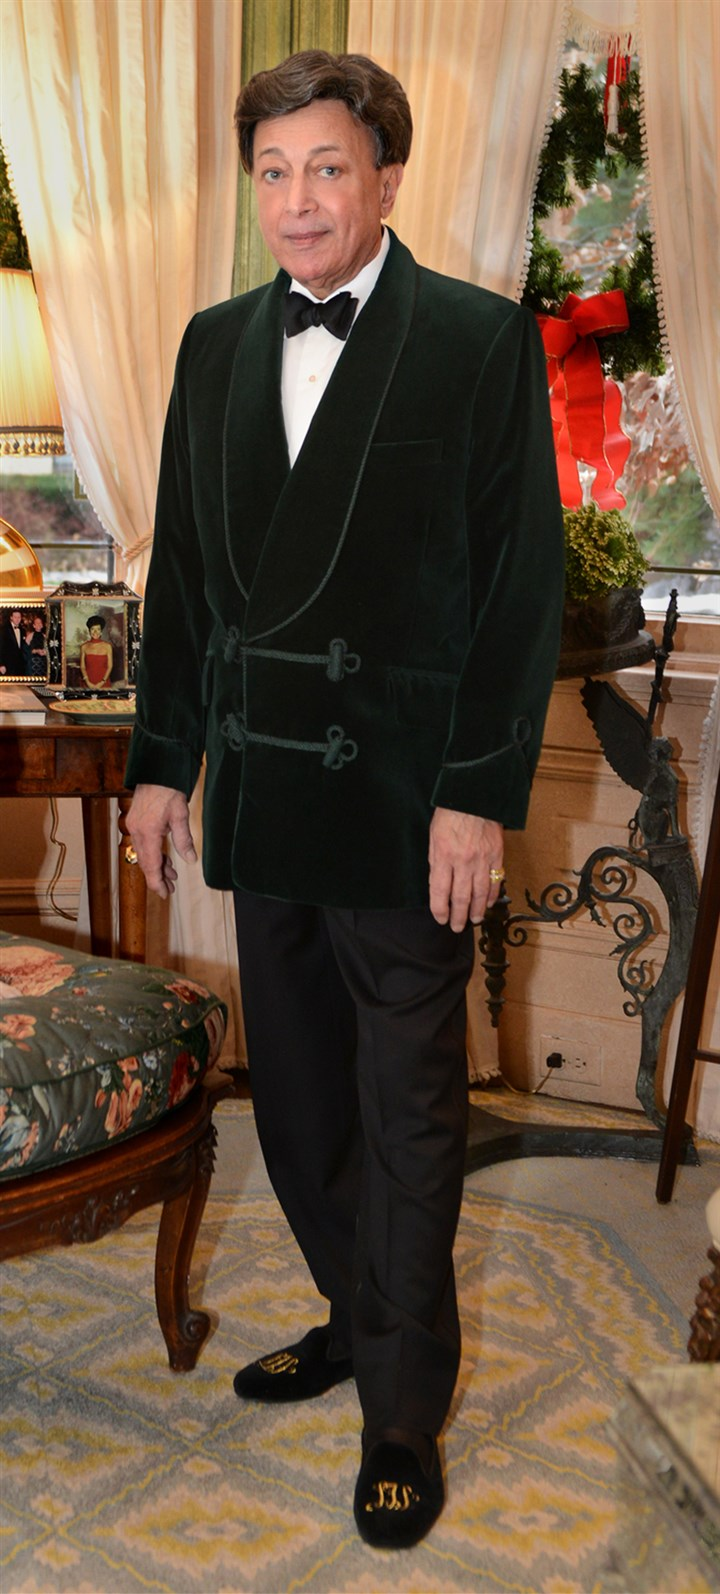 20131215RARseentalotta2-1 Louis Talotta in a green velvet Turnbull and Asser smoking jacket, a Frey shirt, Hermes tie, Kiton trousers and monogrammed Stubbs and Wooton evening shoes. Louis Talotta in his formal attire.